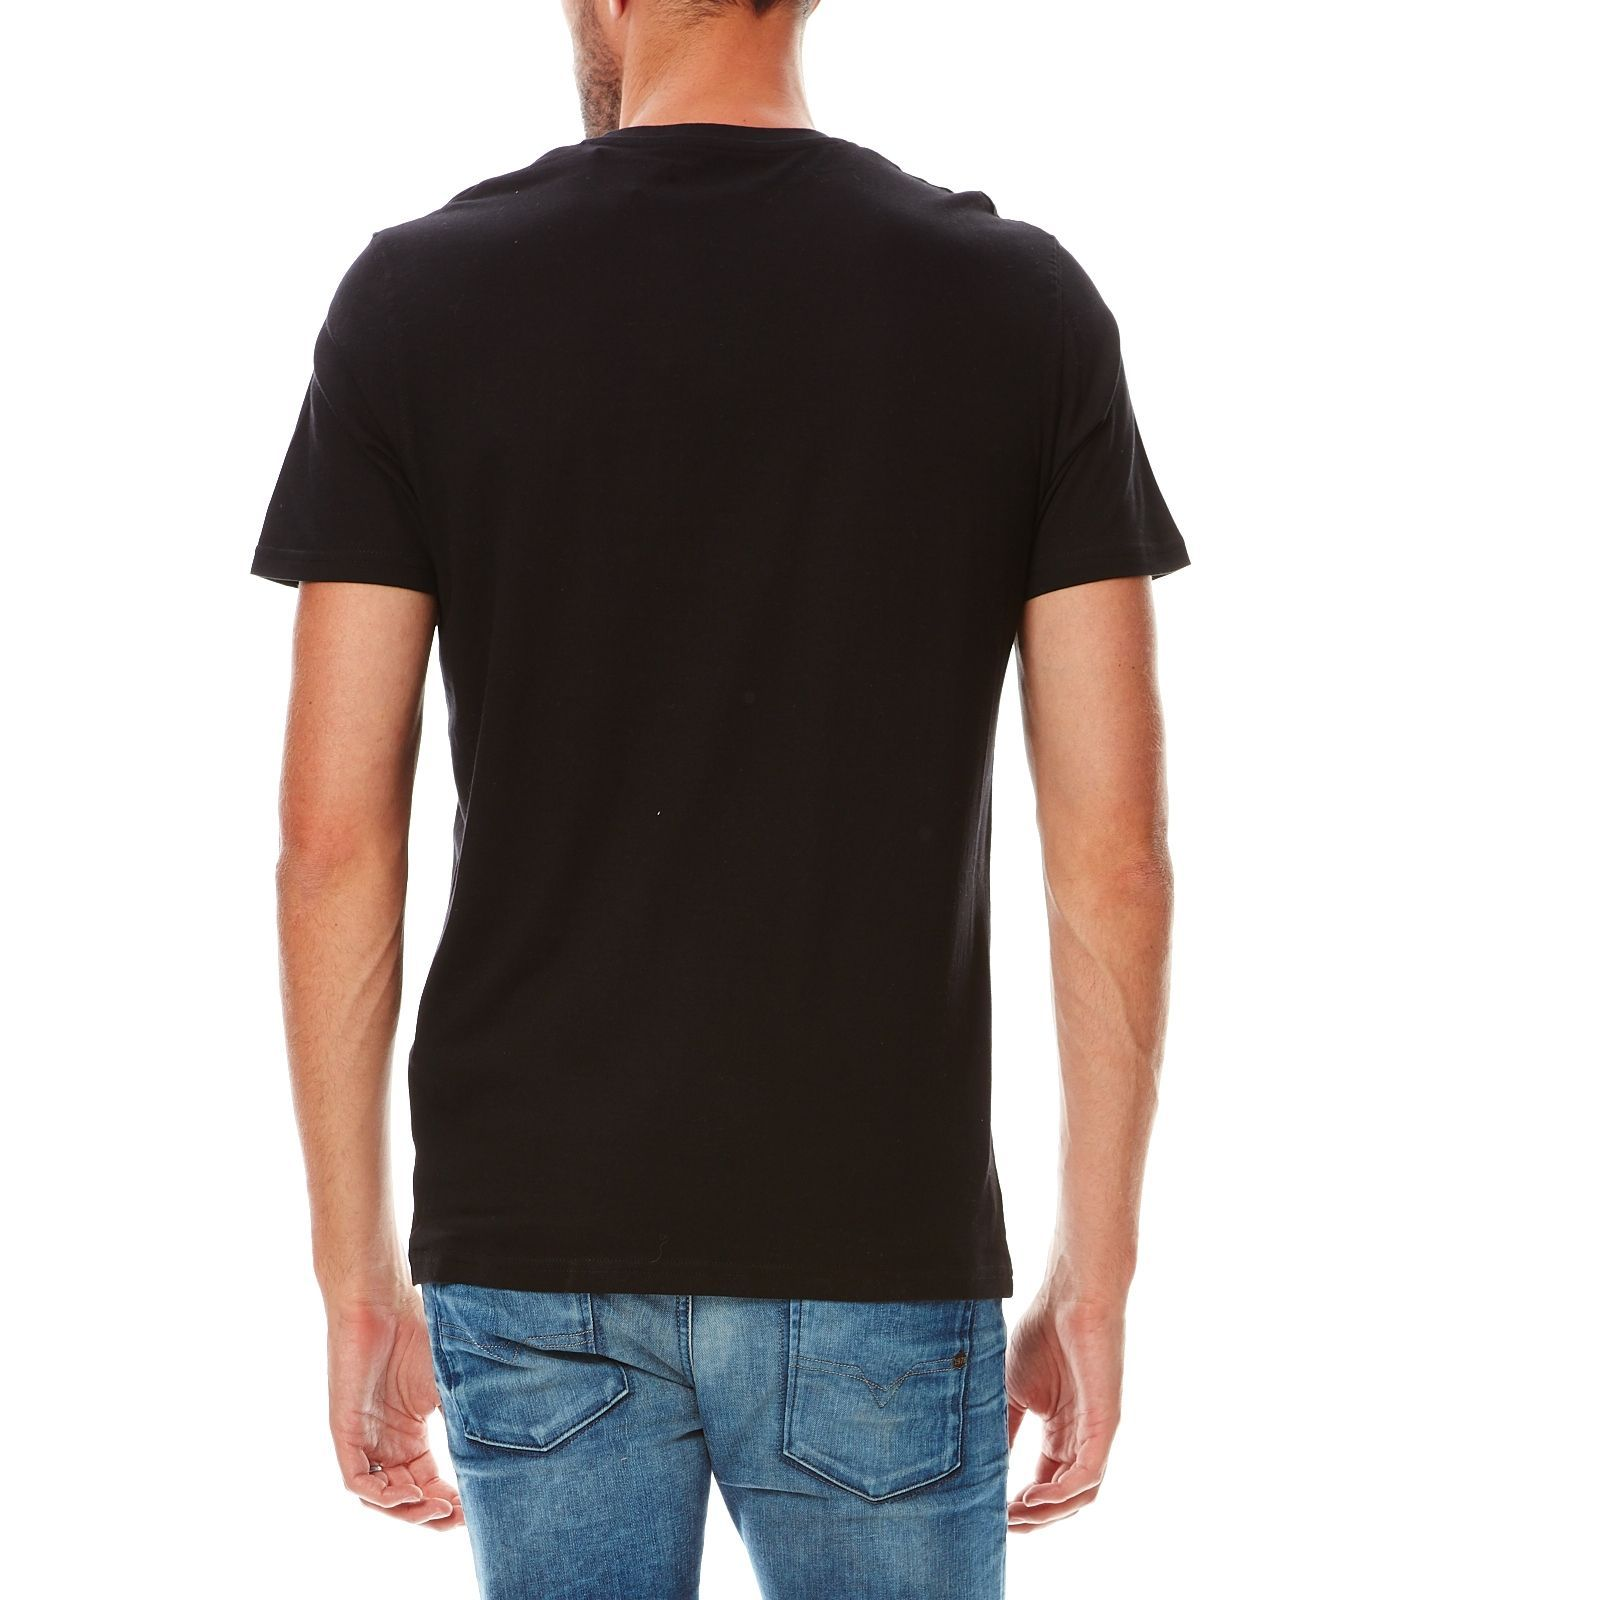 celio t shirt en coton noir brandalley. Black Bedroom Furniture Sets. Home Design Ideas